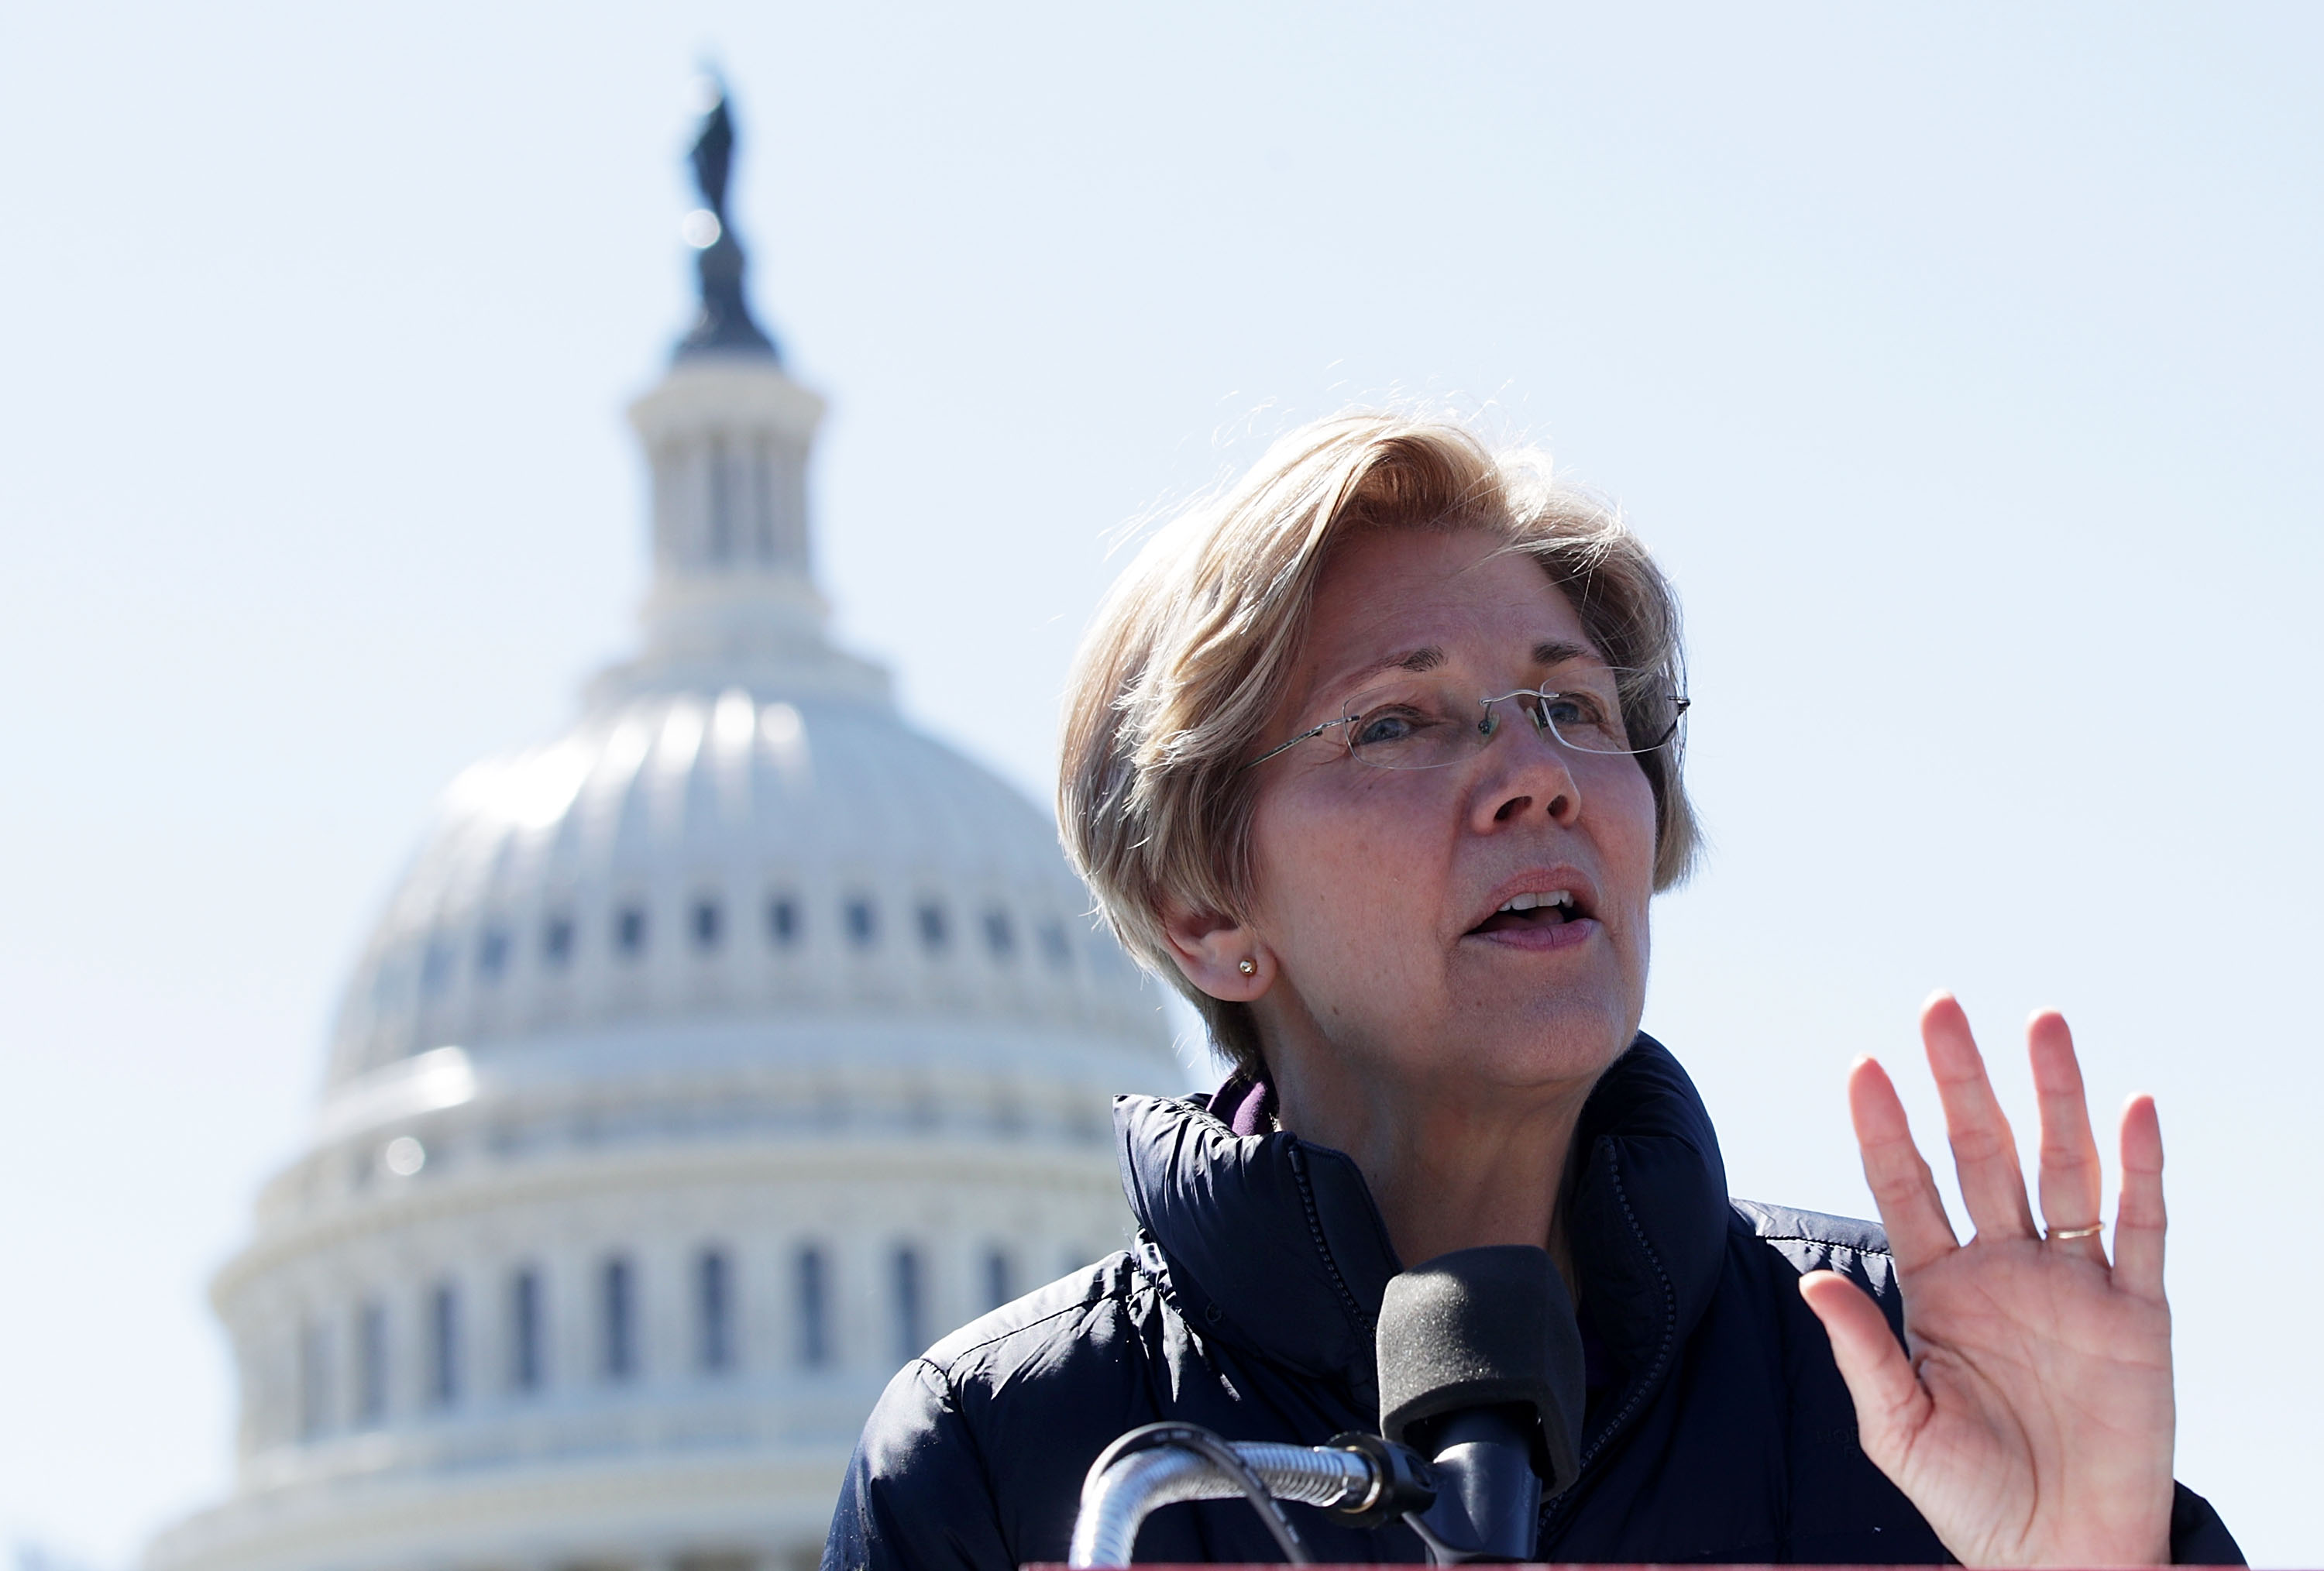 Sen. Elizabeth Warren (D-MA) speaks during a rally in front of the Capitol on March 22, 2017 in Washington, D.C.